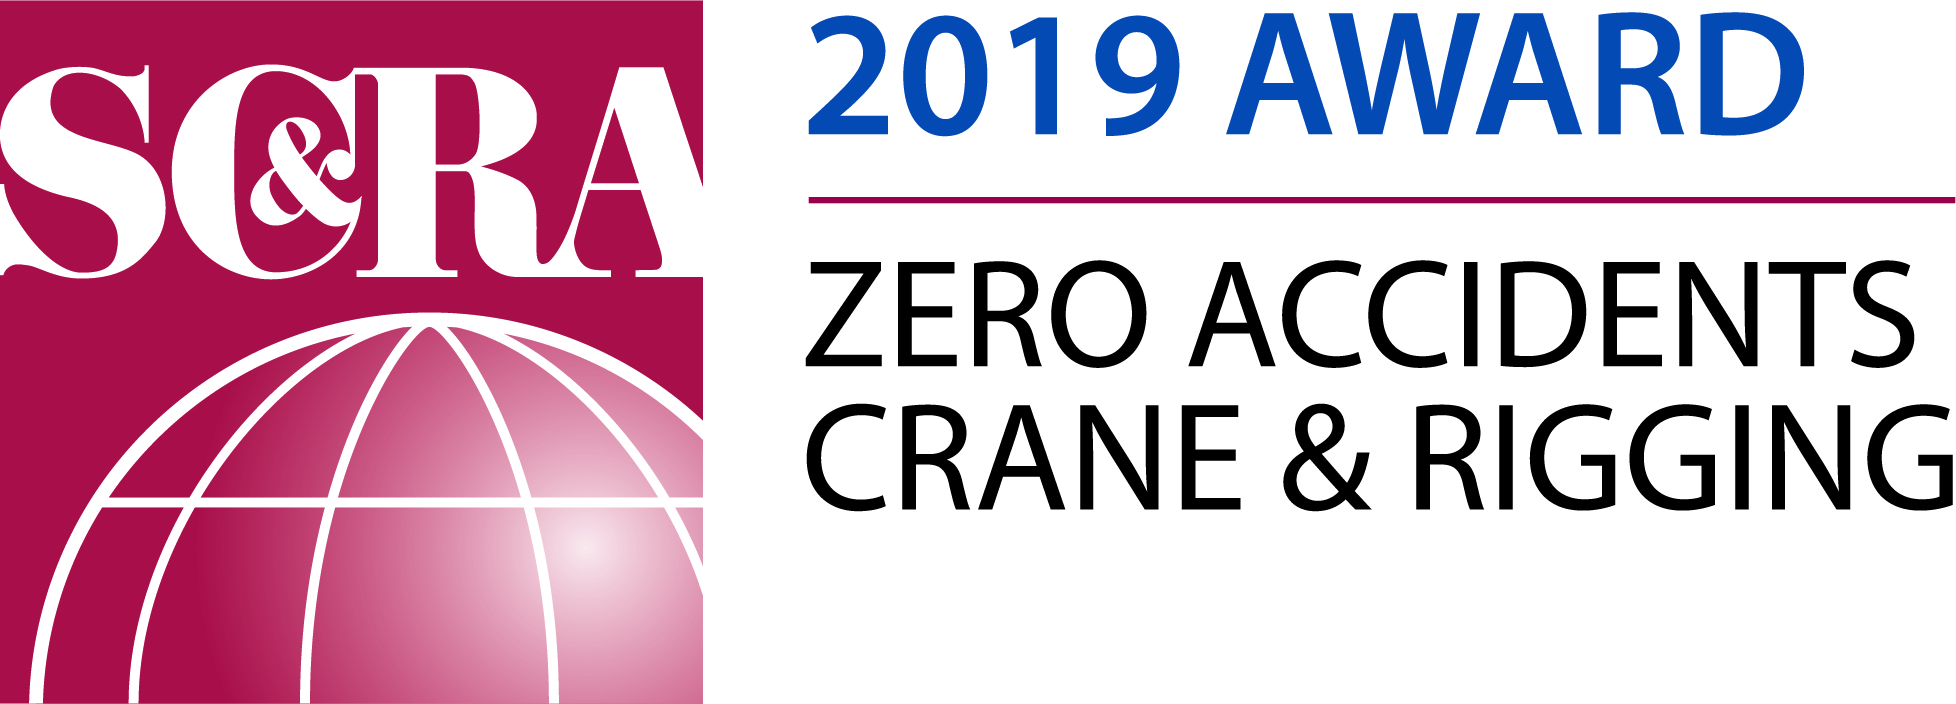 2019-ZeroAccidents Crane & Rigging